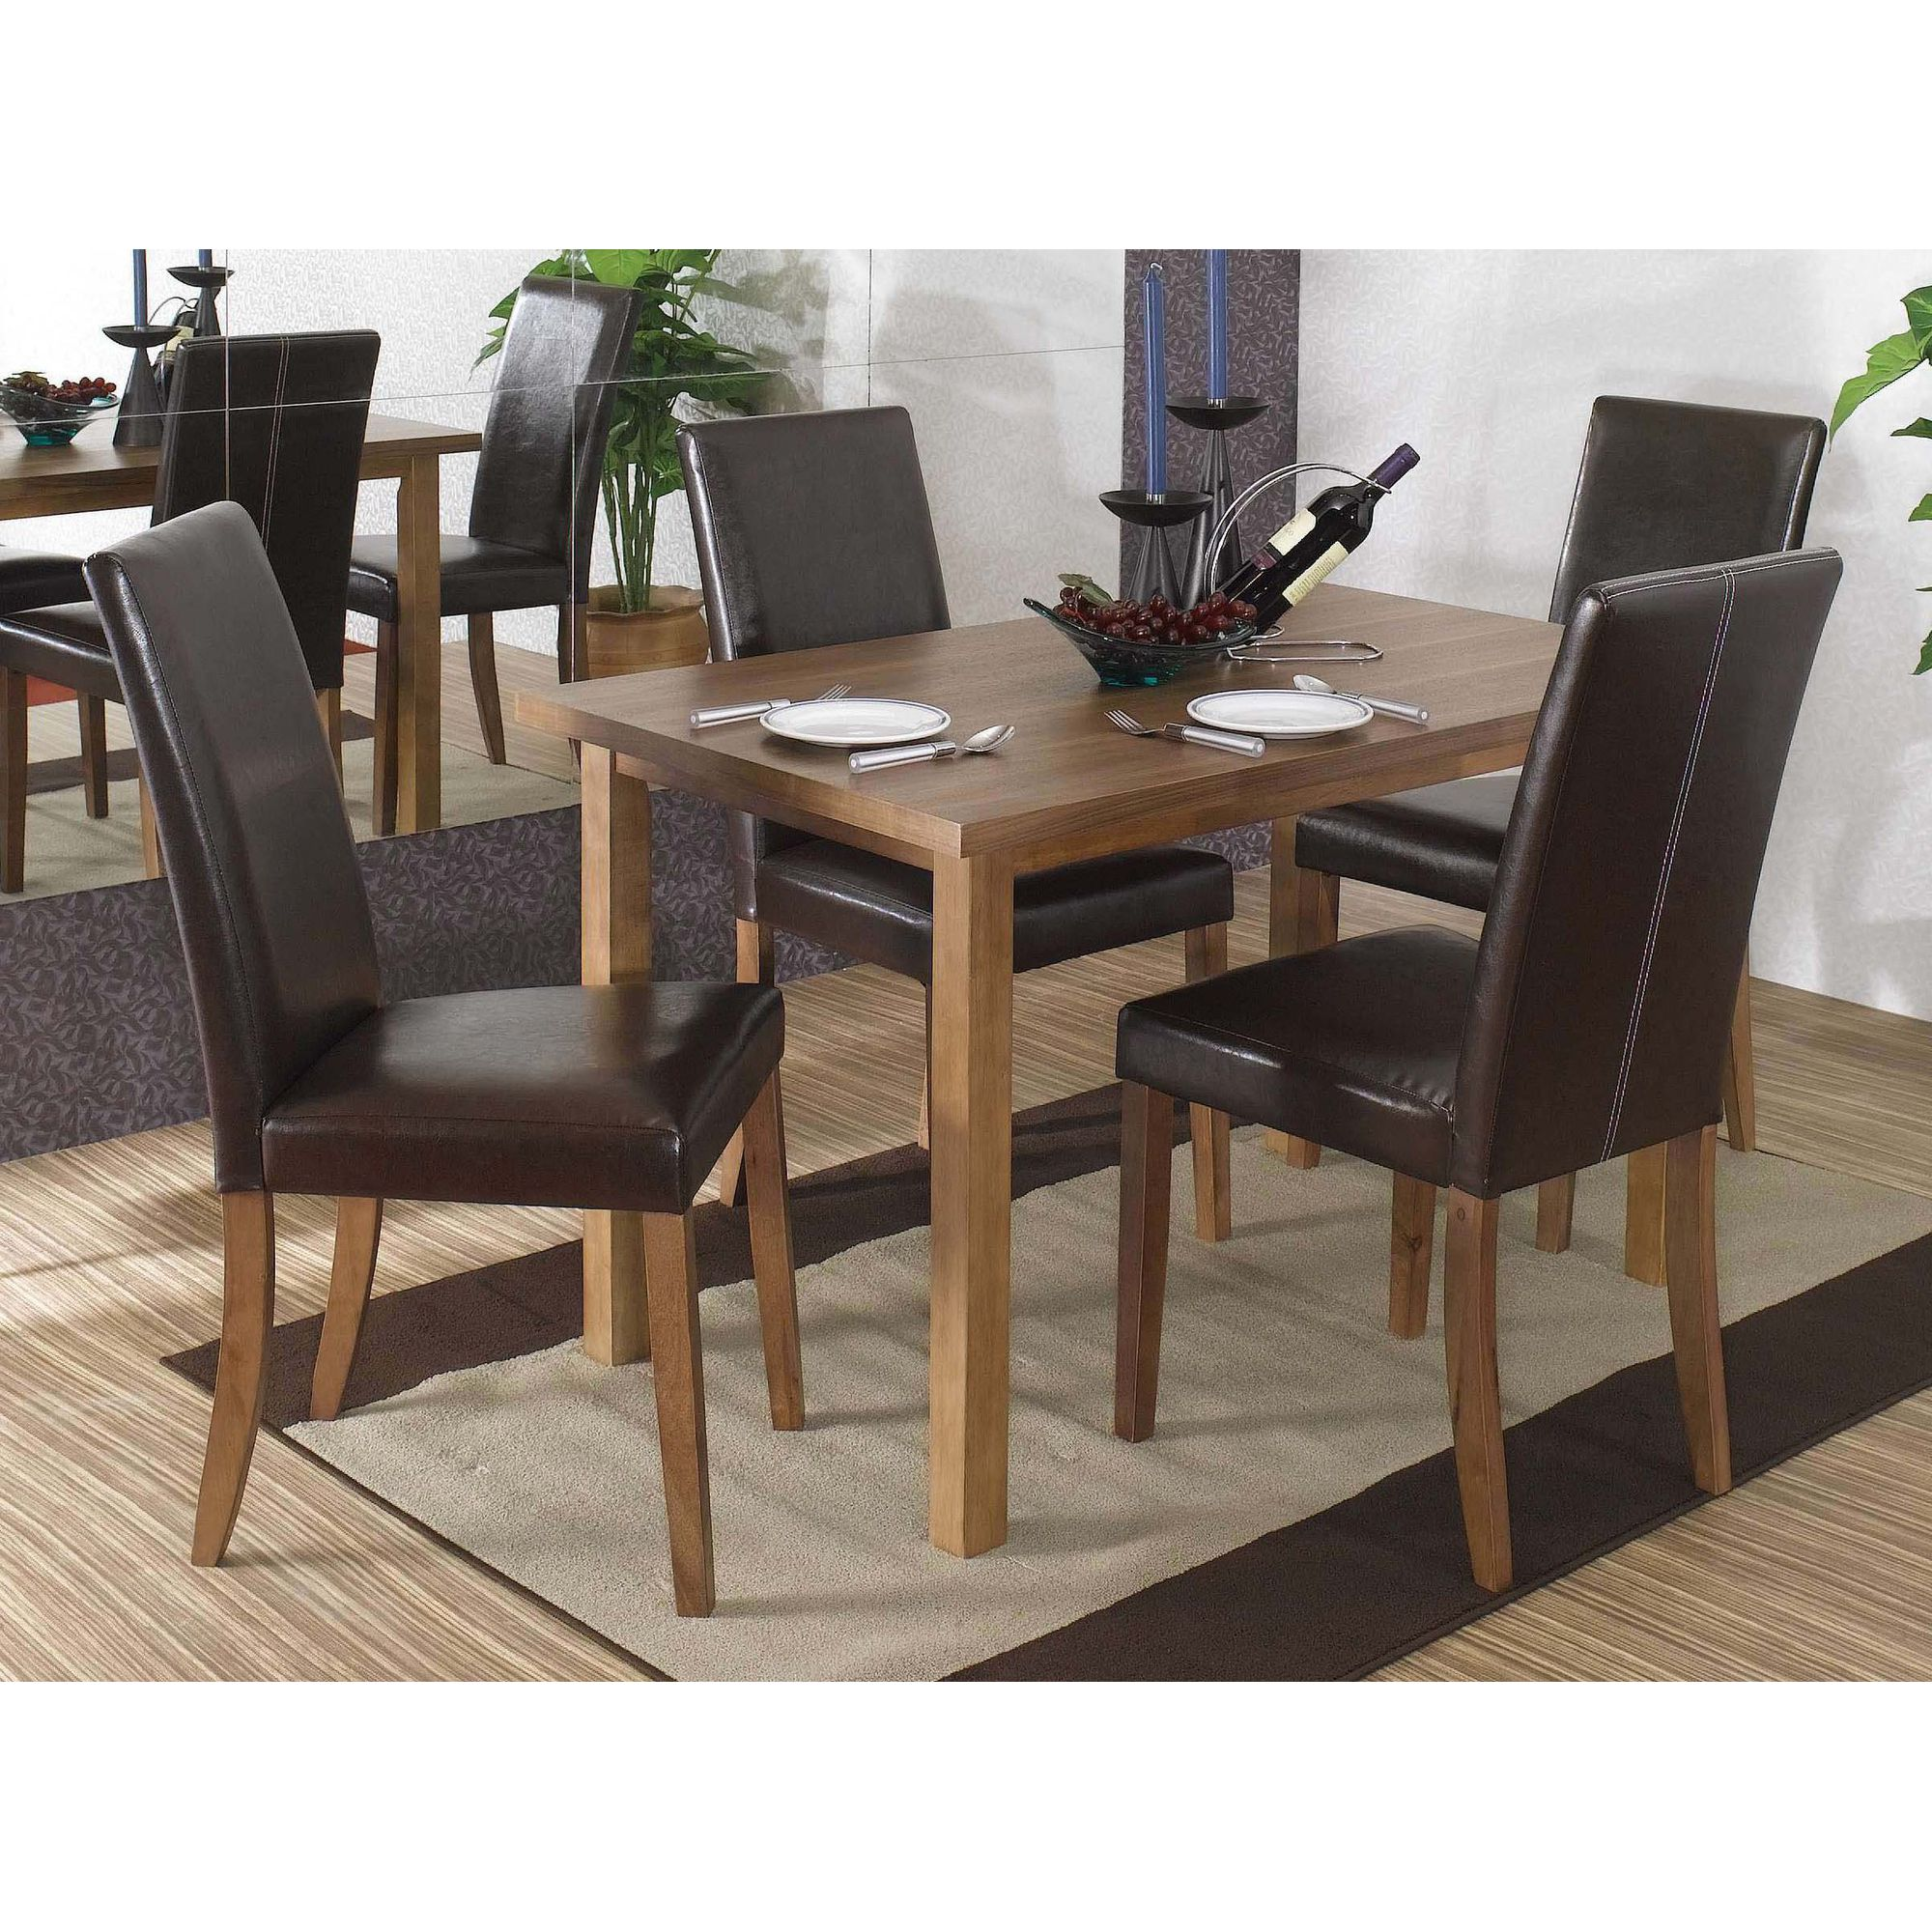 Home Zone Chiltern 5-Piece Small Dining Set in Brown at Tesco Direct